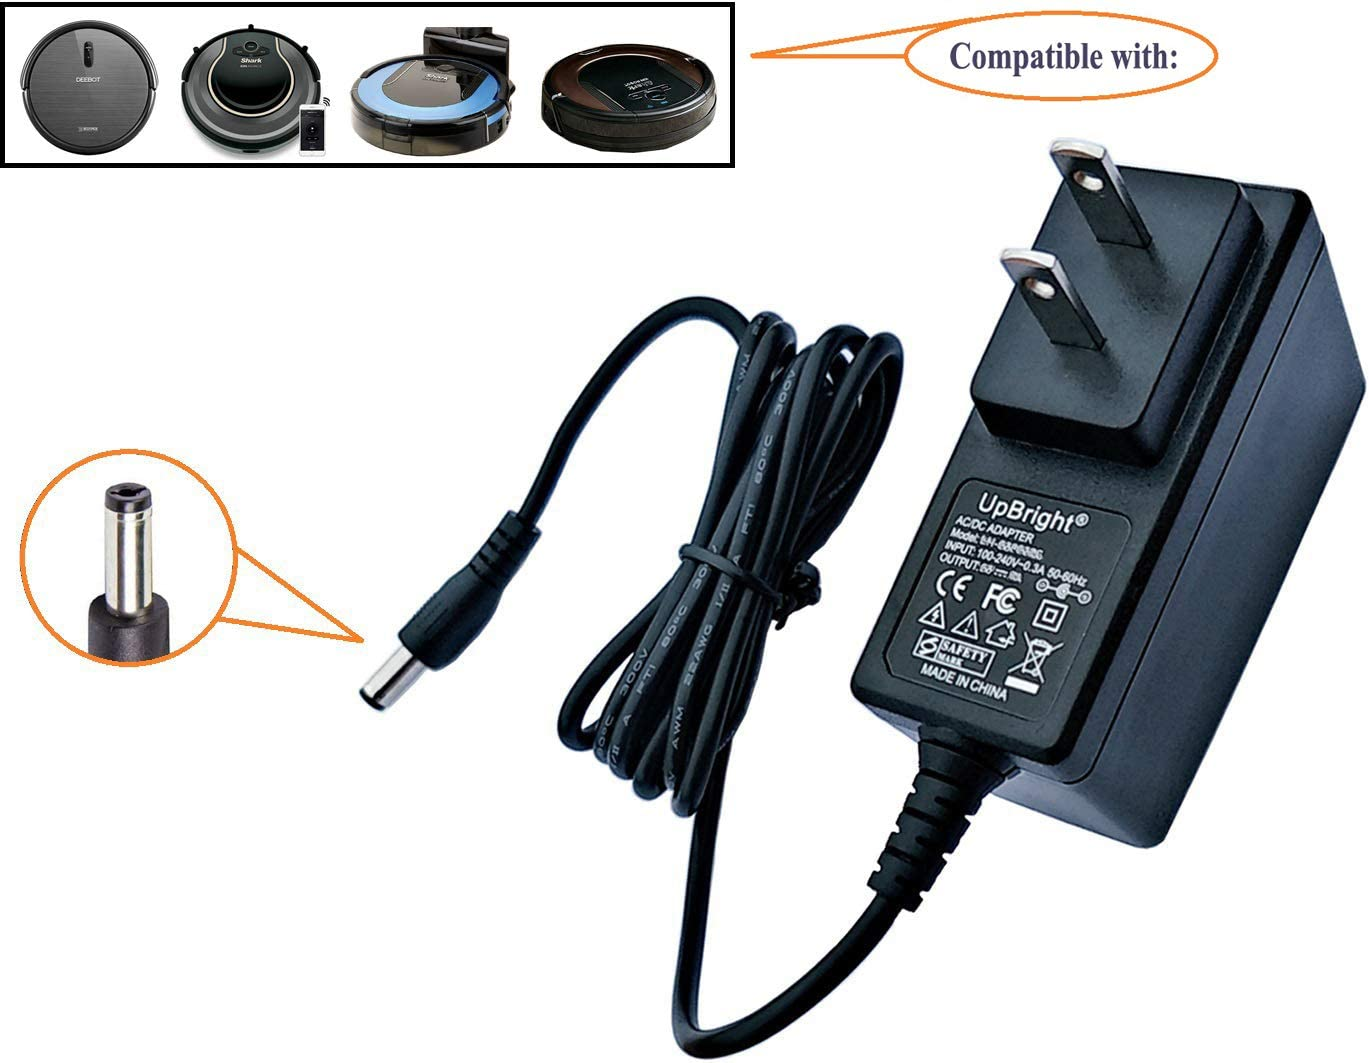 UpBright 19V AC/DC Adapter Compatible with Shark Ion Robot RV700 RV720 RV725 N RV750 R850 RV852 Vacuum DK18-190060H-U Ecovacs DN622 Deebot N79 S Pro DN79 Eufy RoboVac 11 T2102 Pyle PUCRC25 Charger